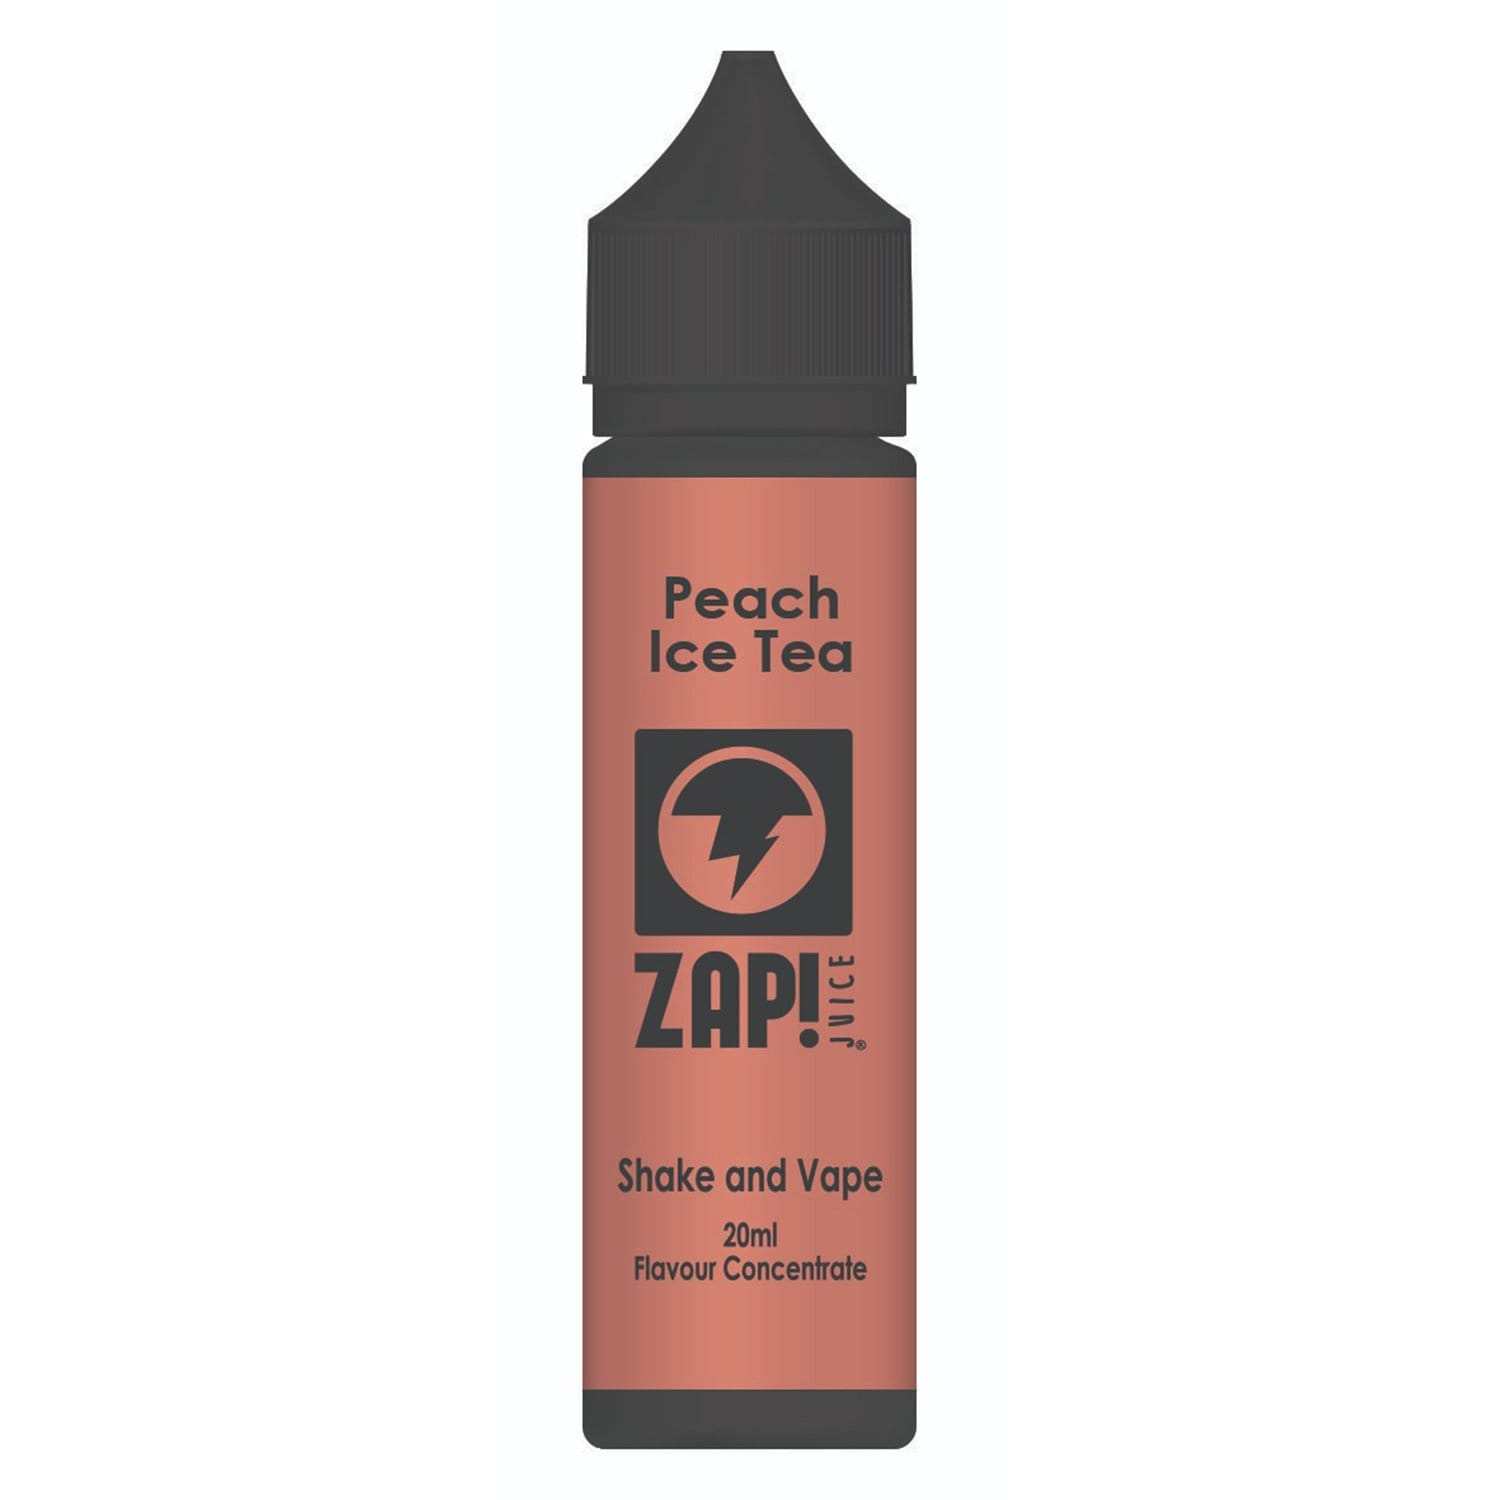 ZAP! Juice Peach Ice Tea Shake and Vape 20ml Flavour Concentrate - Zap Juice Online UK | E-Liquid | Vape Shop  | Authentic flavours